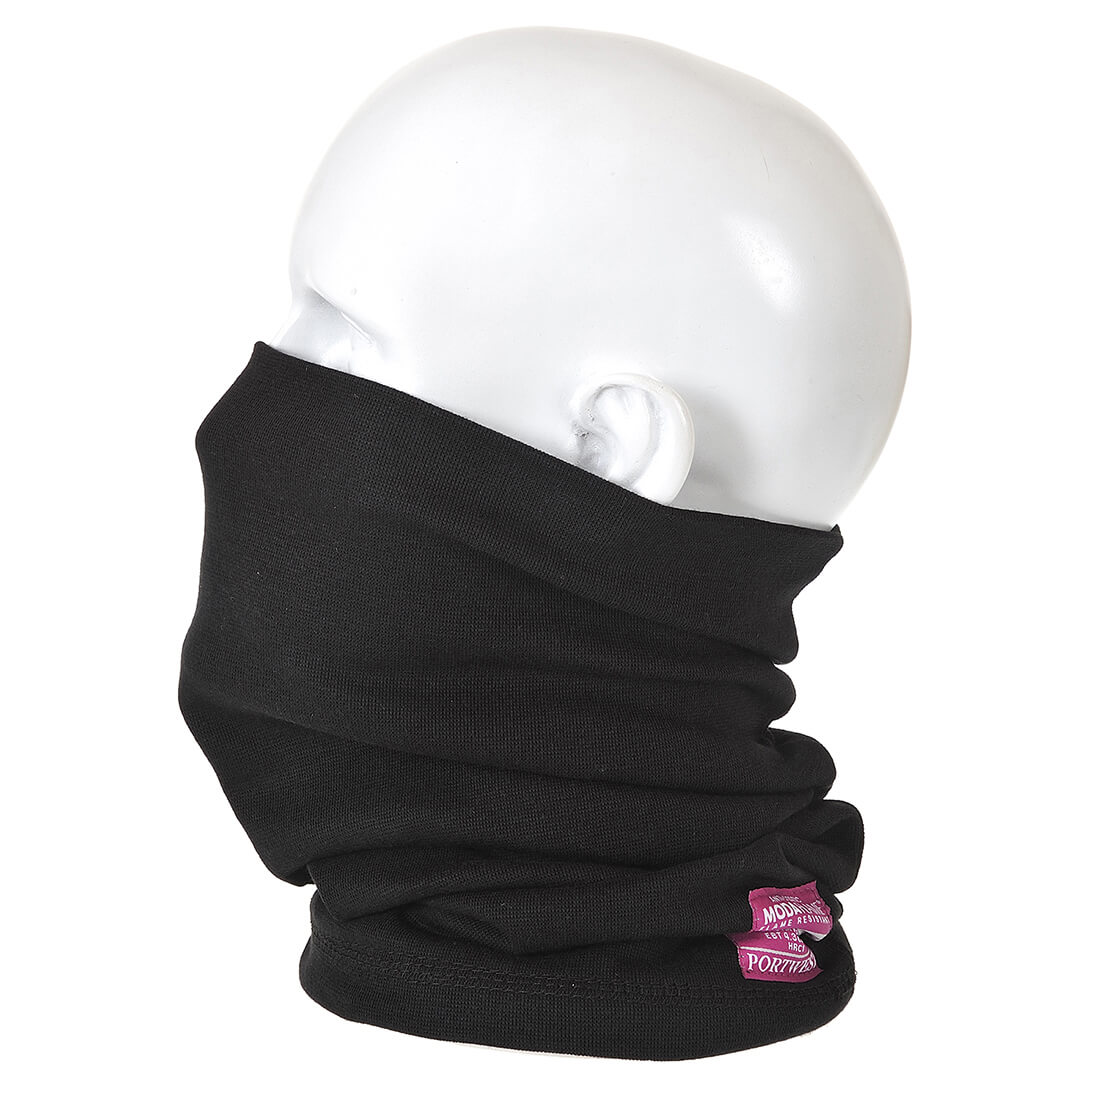 Image of Modaflame Flame Resistant Antistatic Neck Tube Black One Size